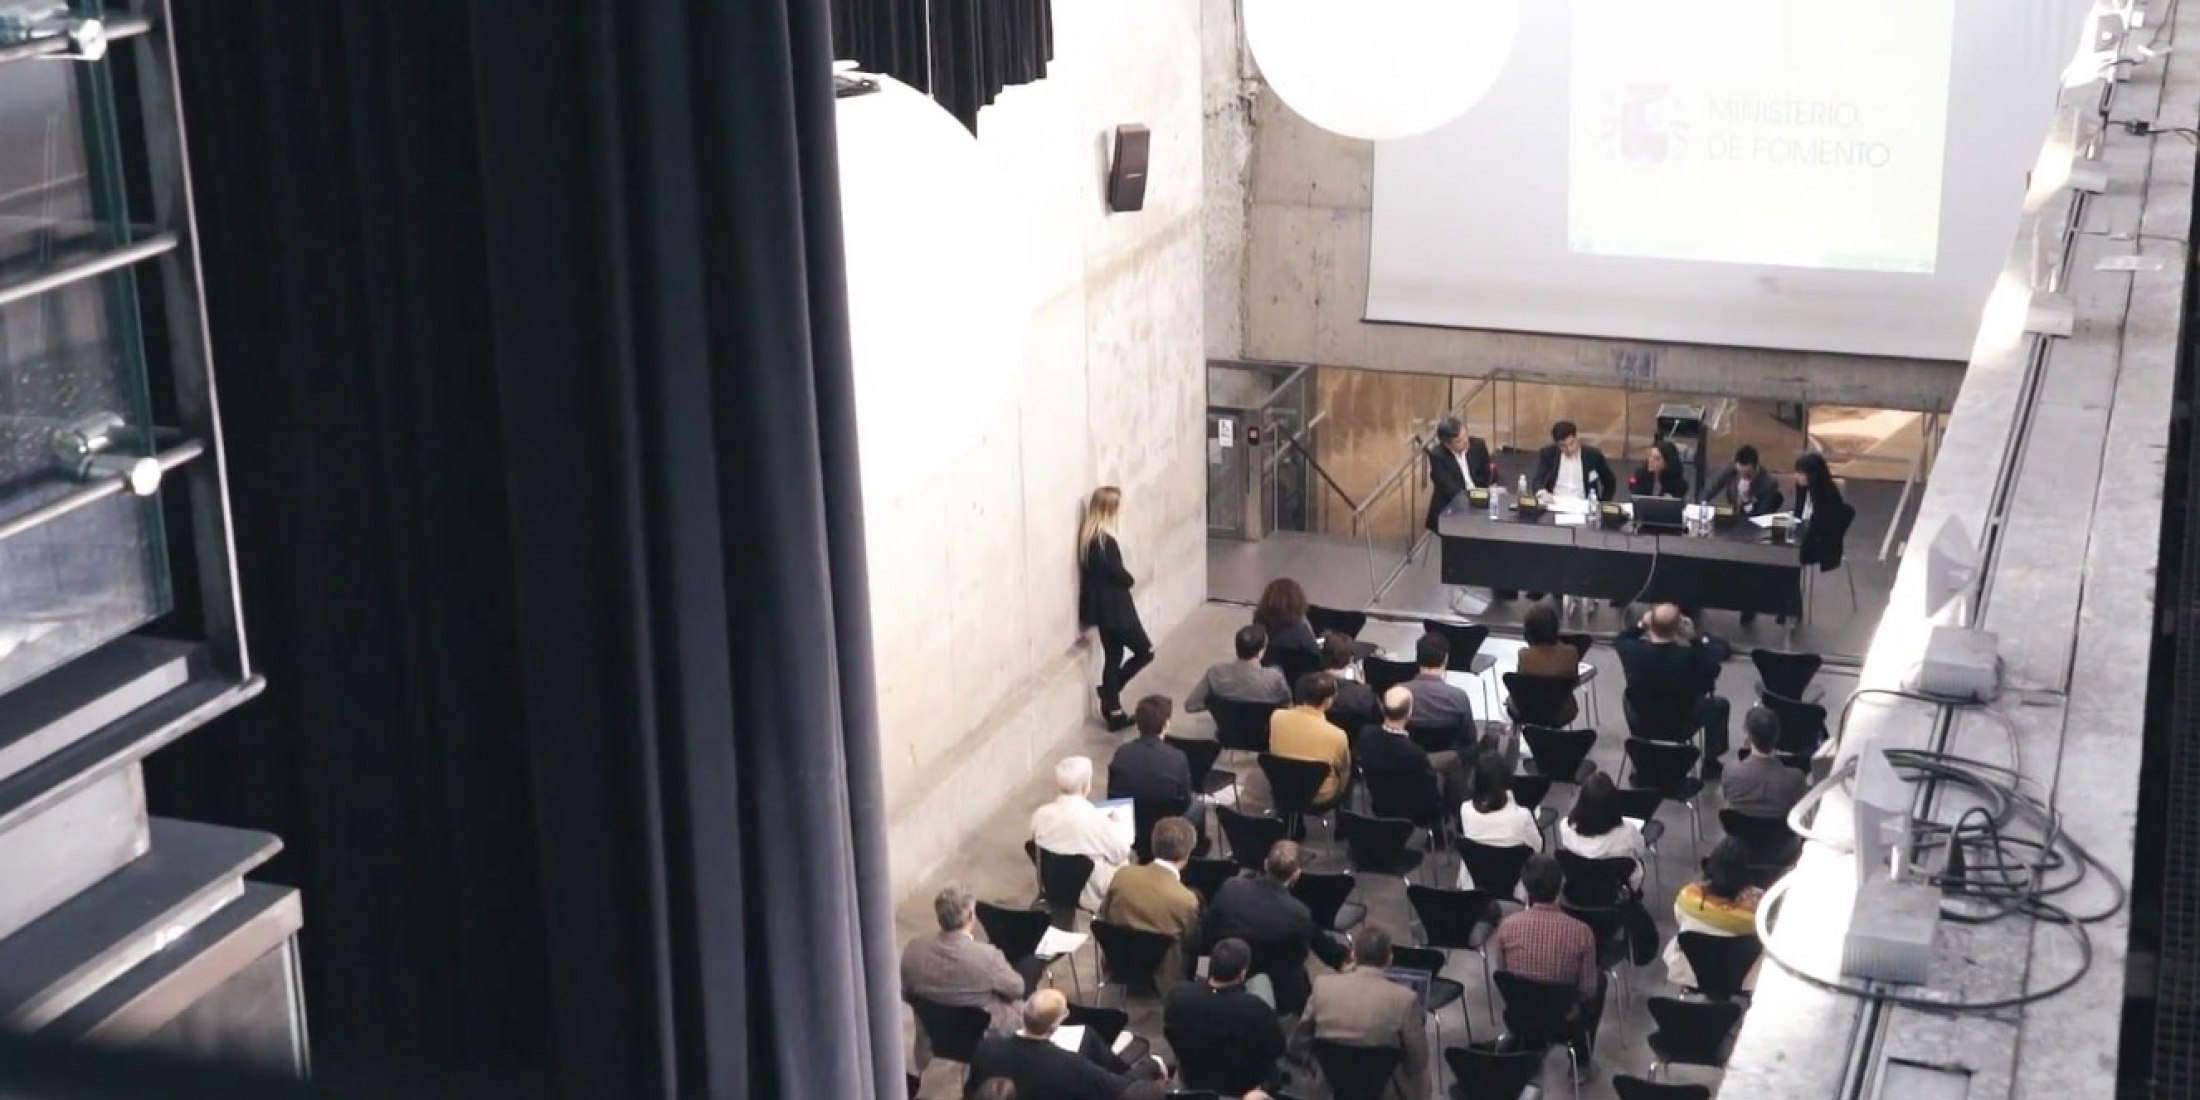 General view of the Assembly Hall of the Aulario de Nuevos Ministerios, during a discussion table at the III Congress Pioneers of Modern Spanish Architecture. Image courtesy of the Alejandro de la Sota Foundation.